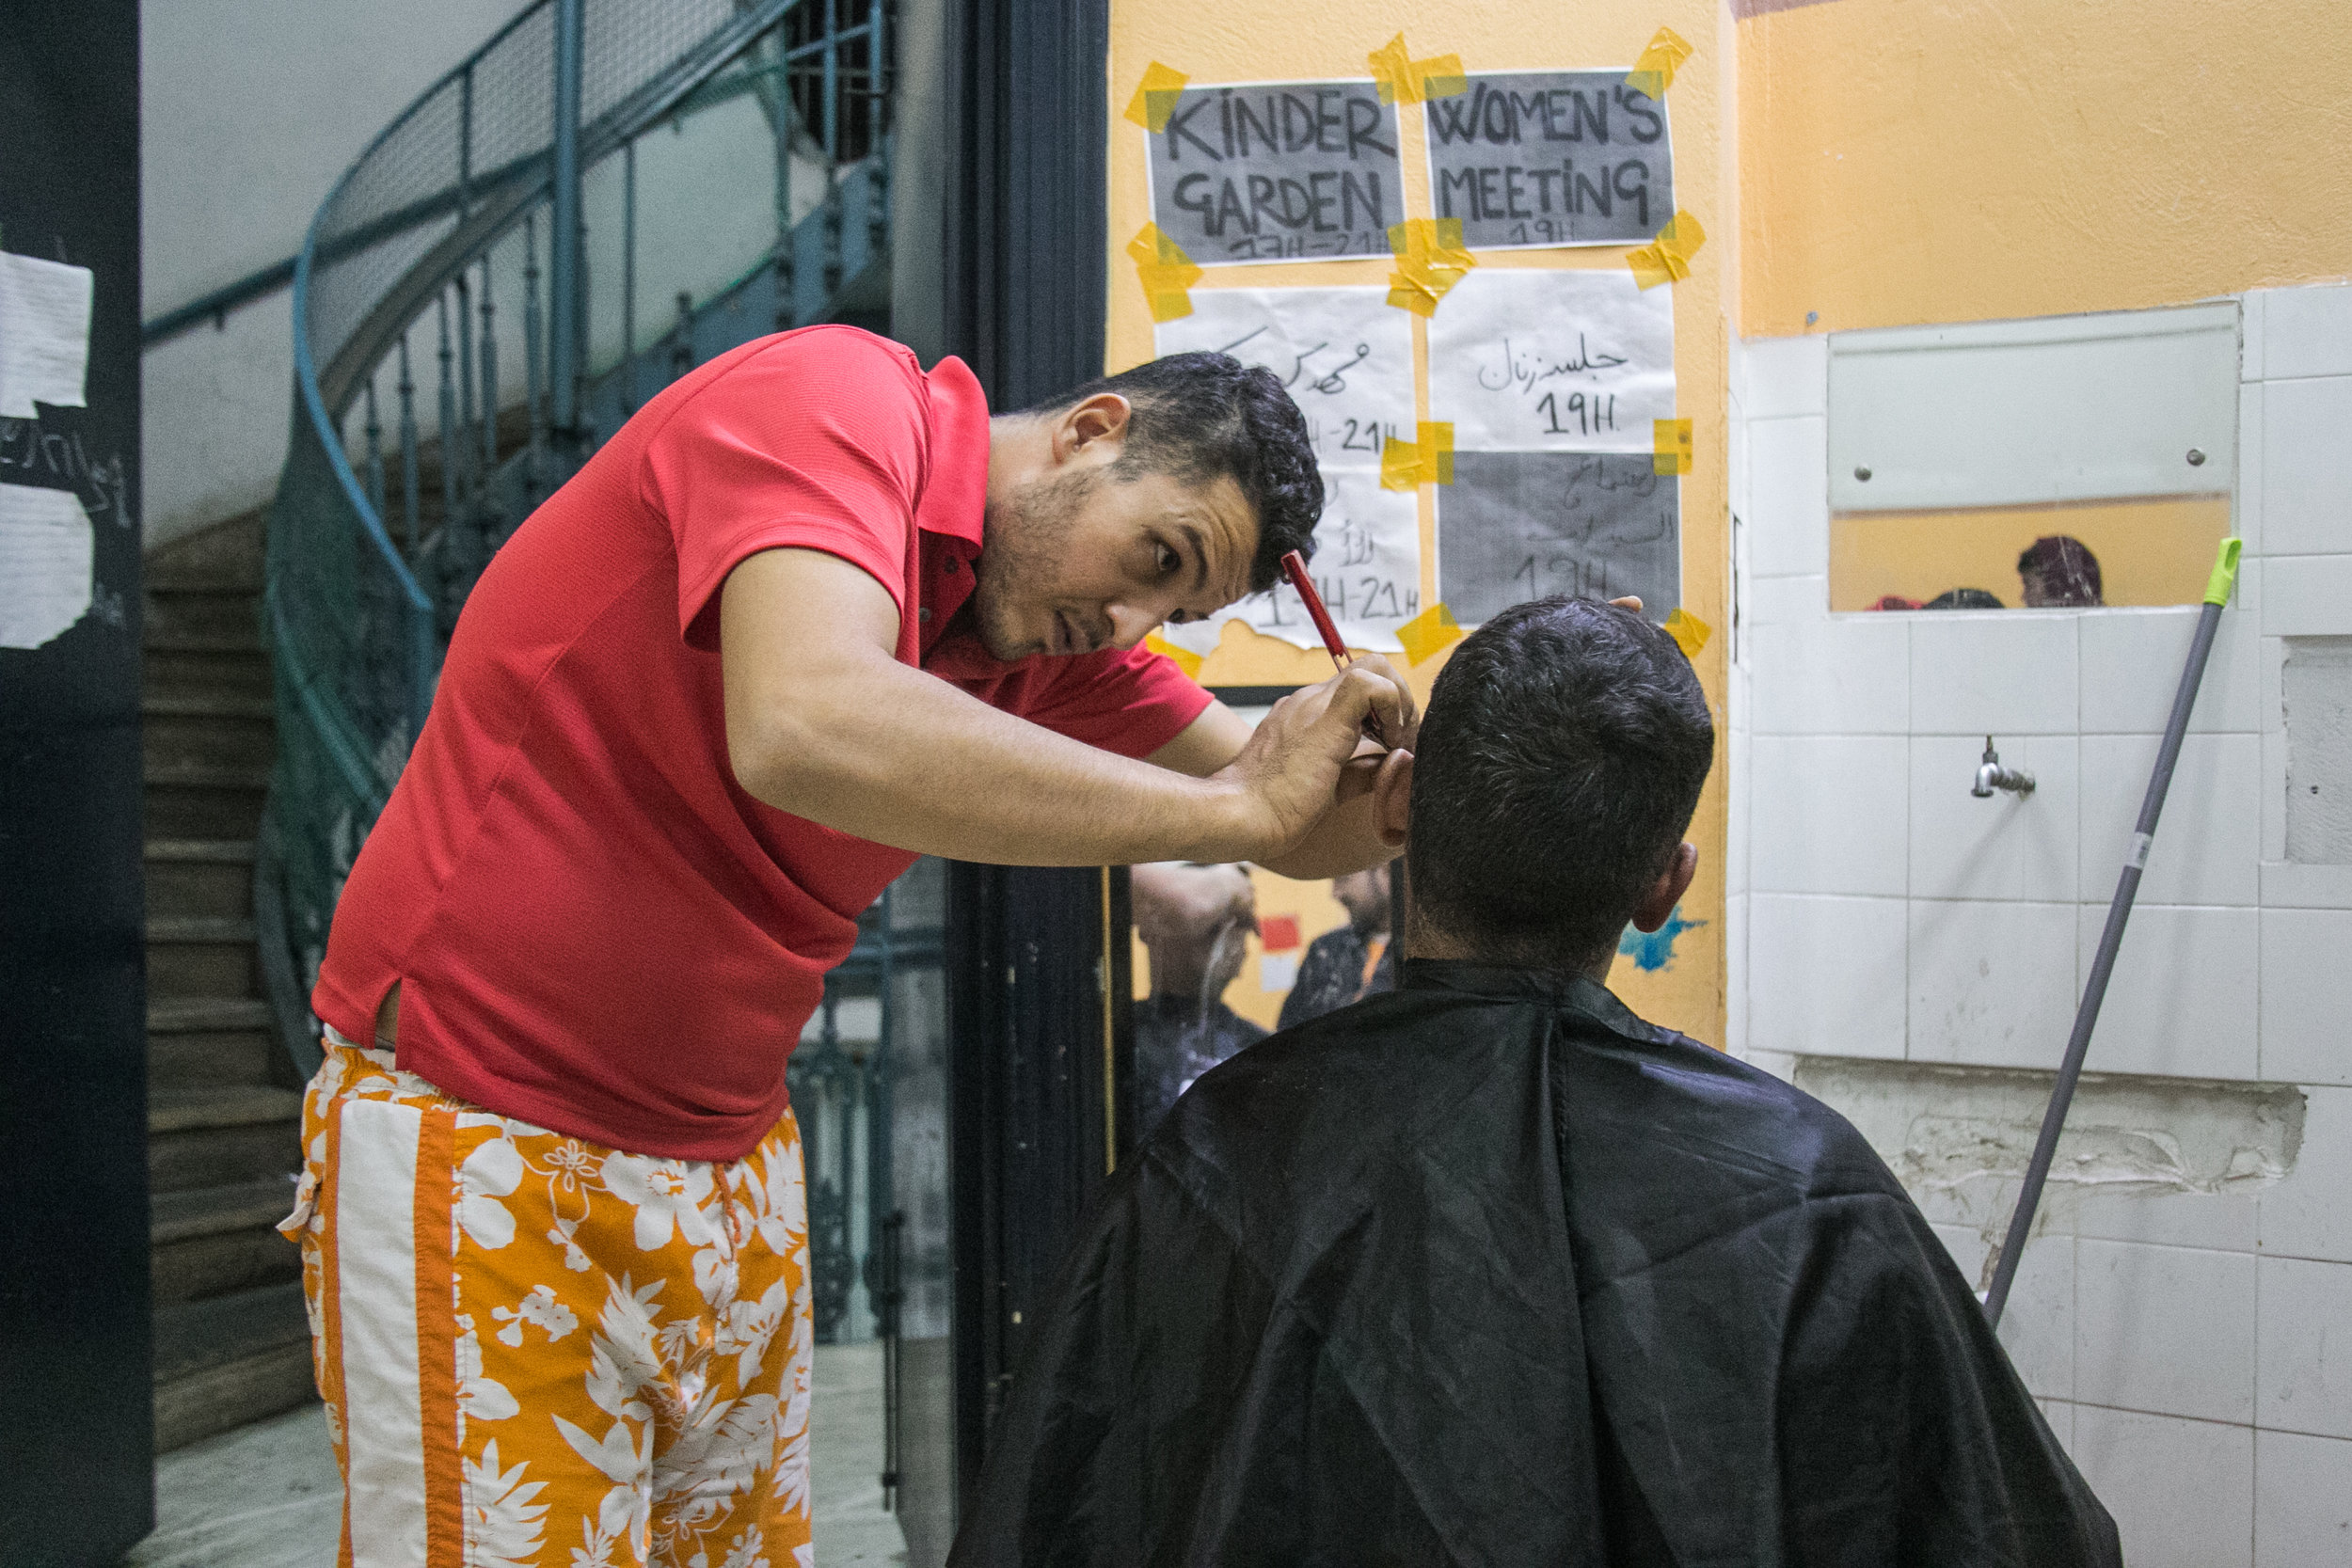 The Jasmine School barber cuts a man's hair in the hallway of the second floor. Haircuts are three euro.